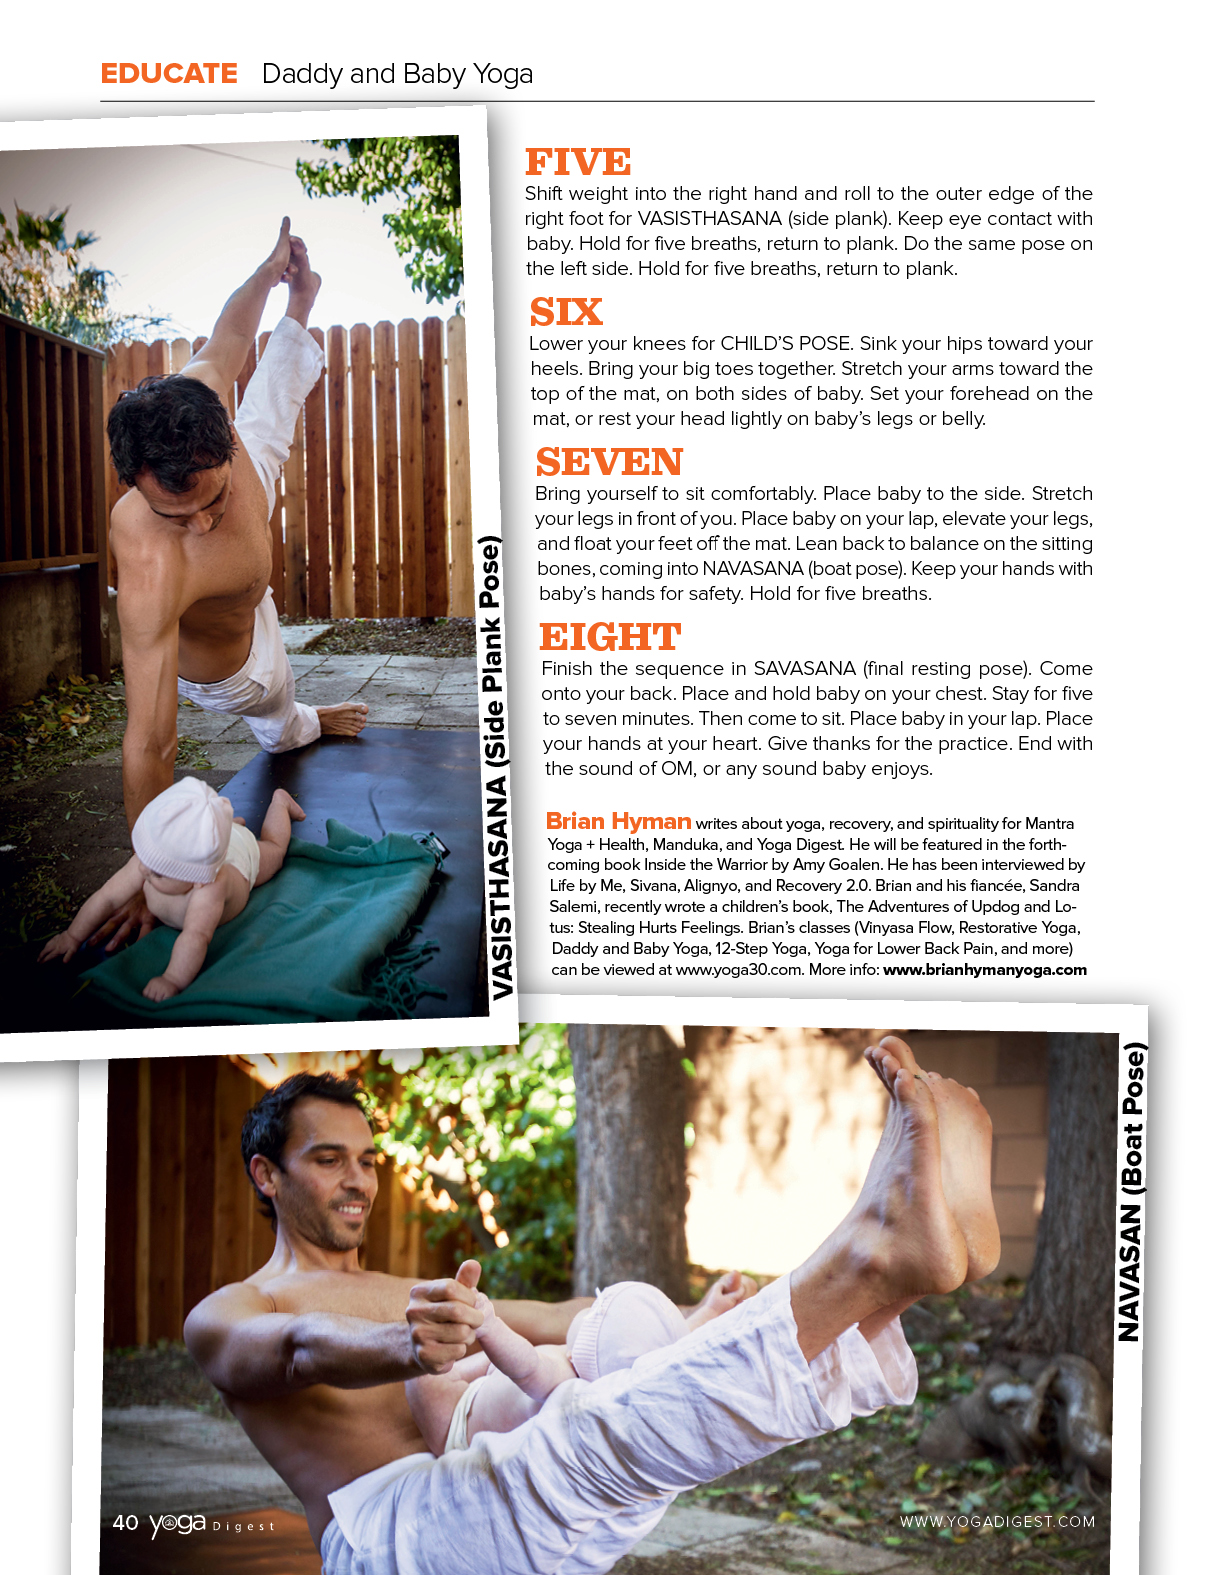 Yoga Digest 4 - Baby Daddy 02 (1)